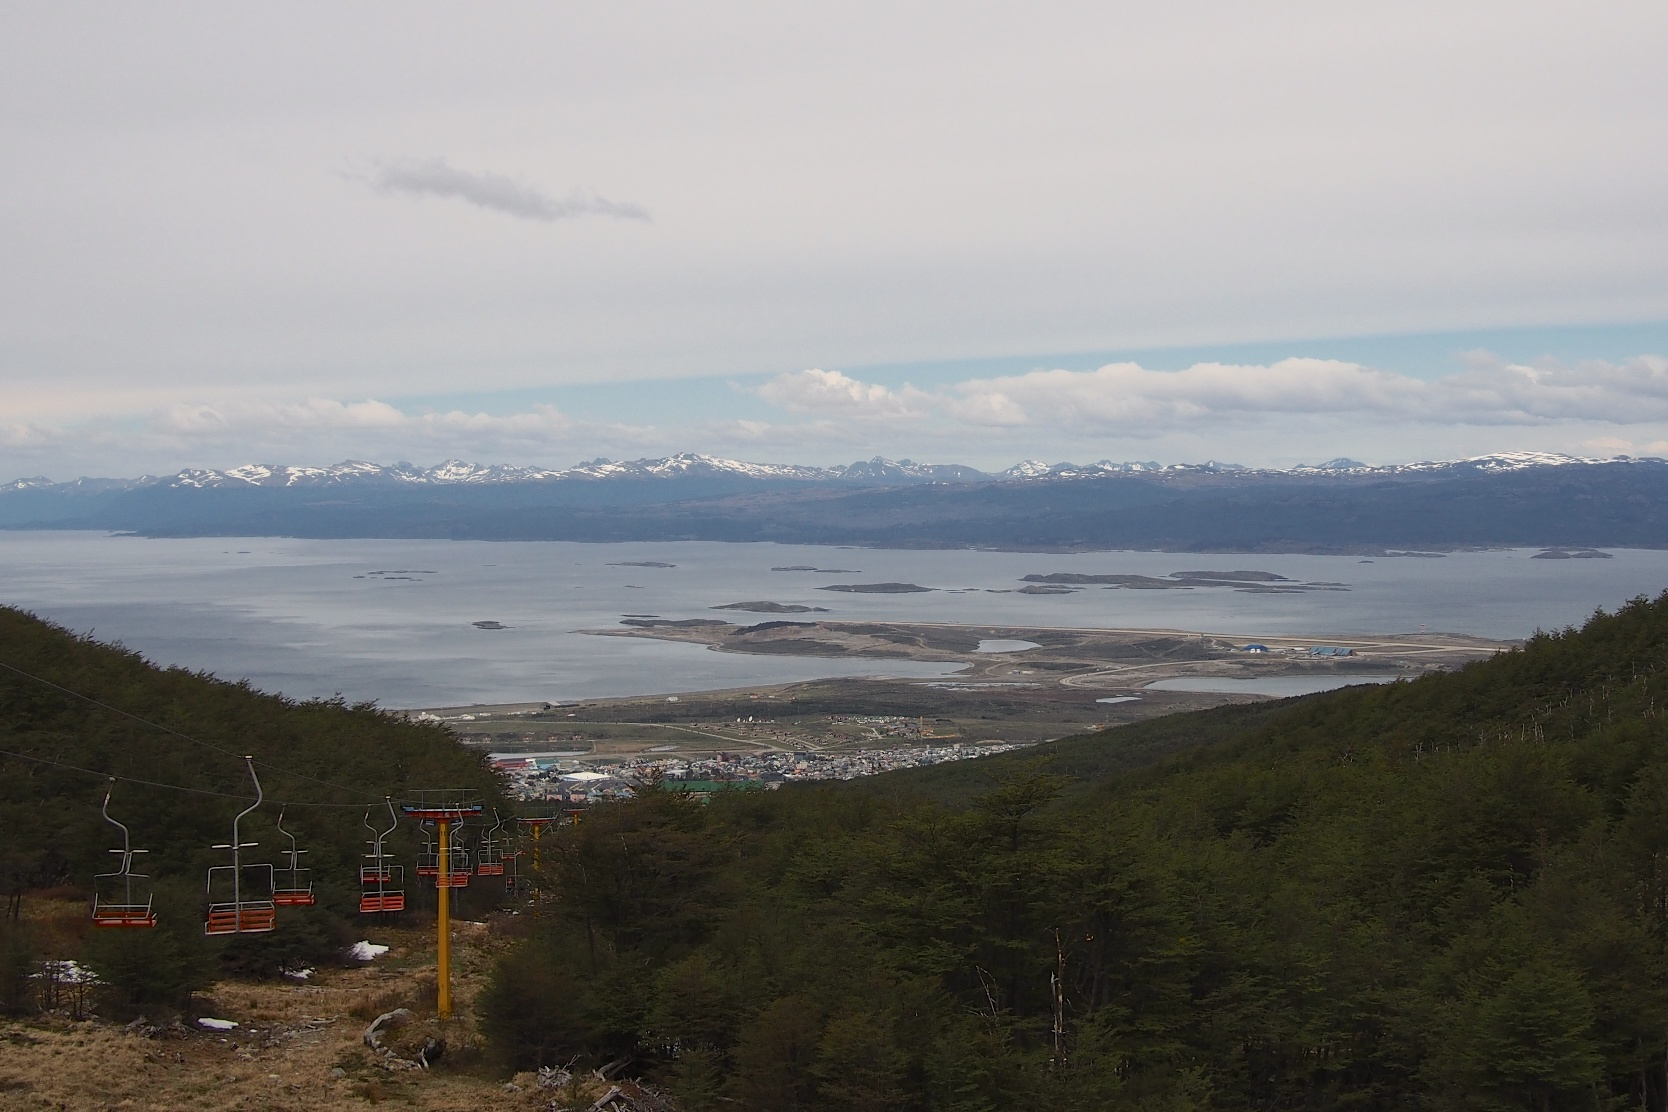 View of Ushuaia and its surroundings from the top of the chairlift